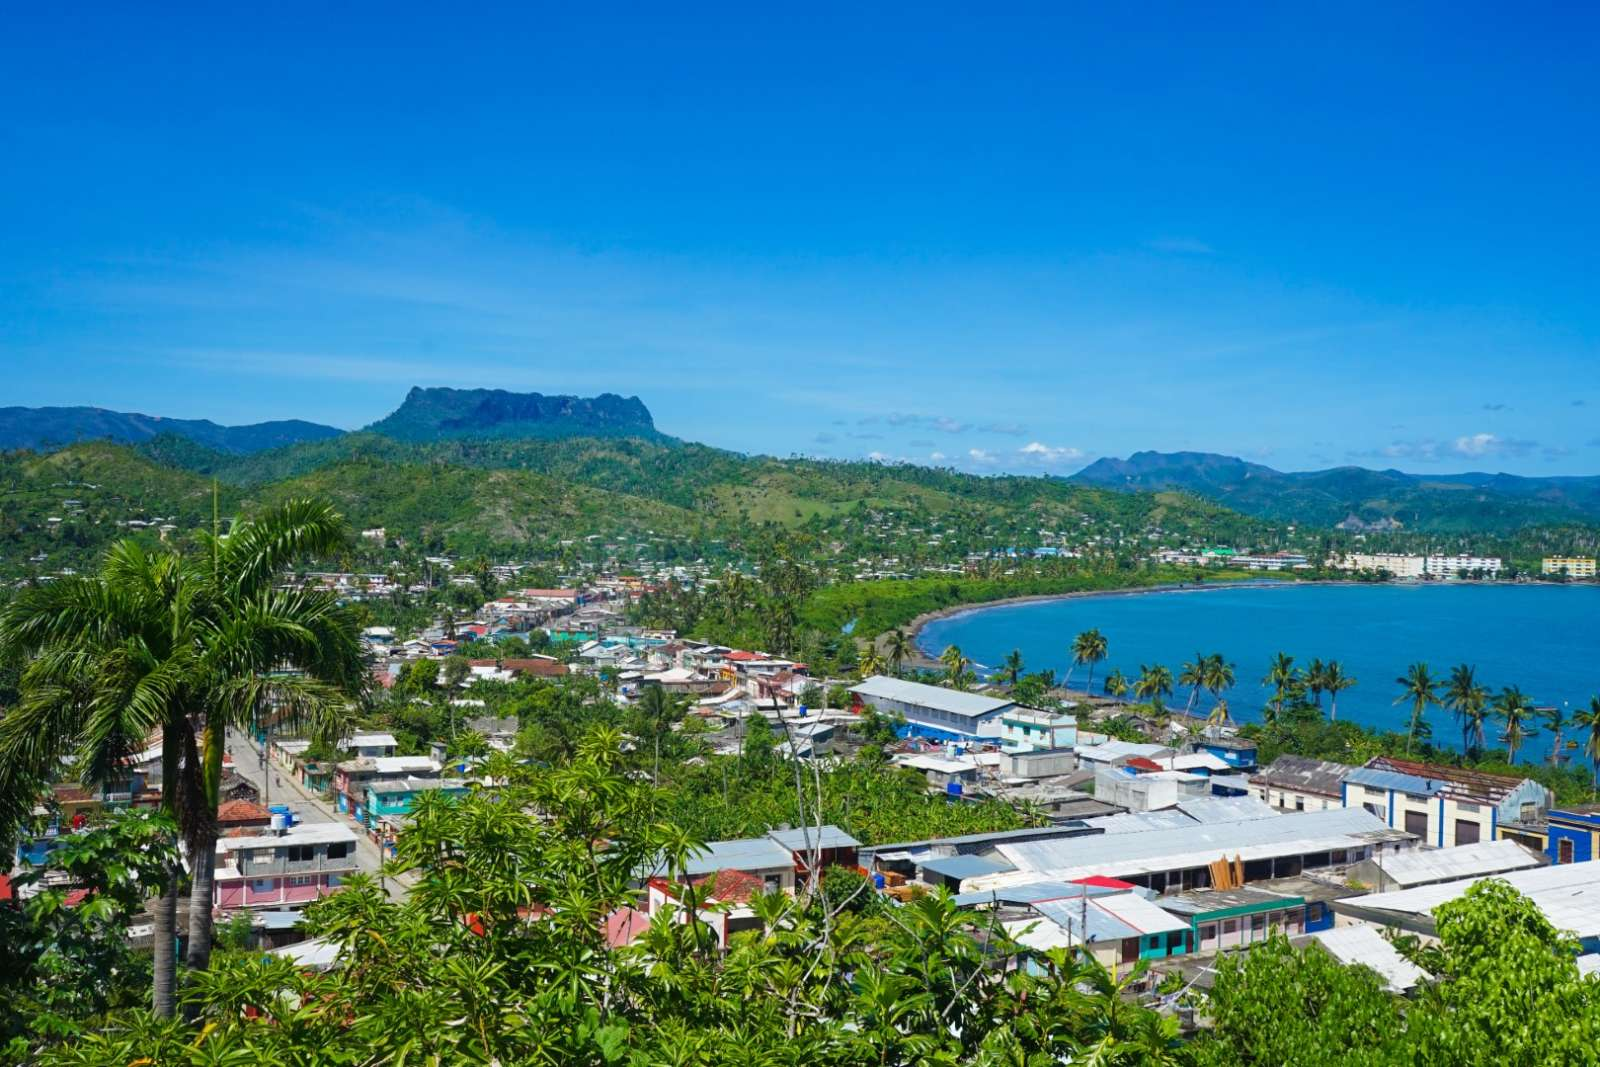 View over Baracoa Bay in Cuba